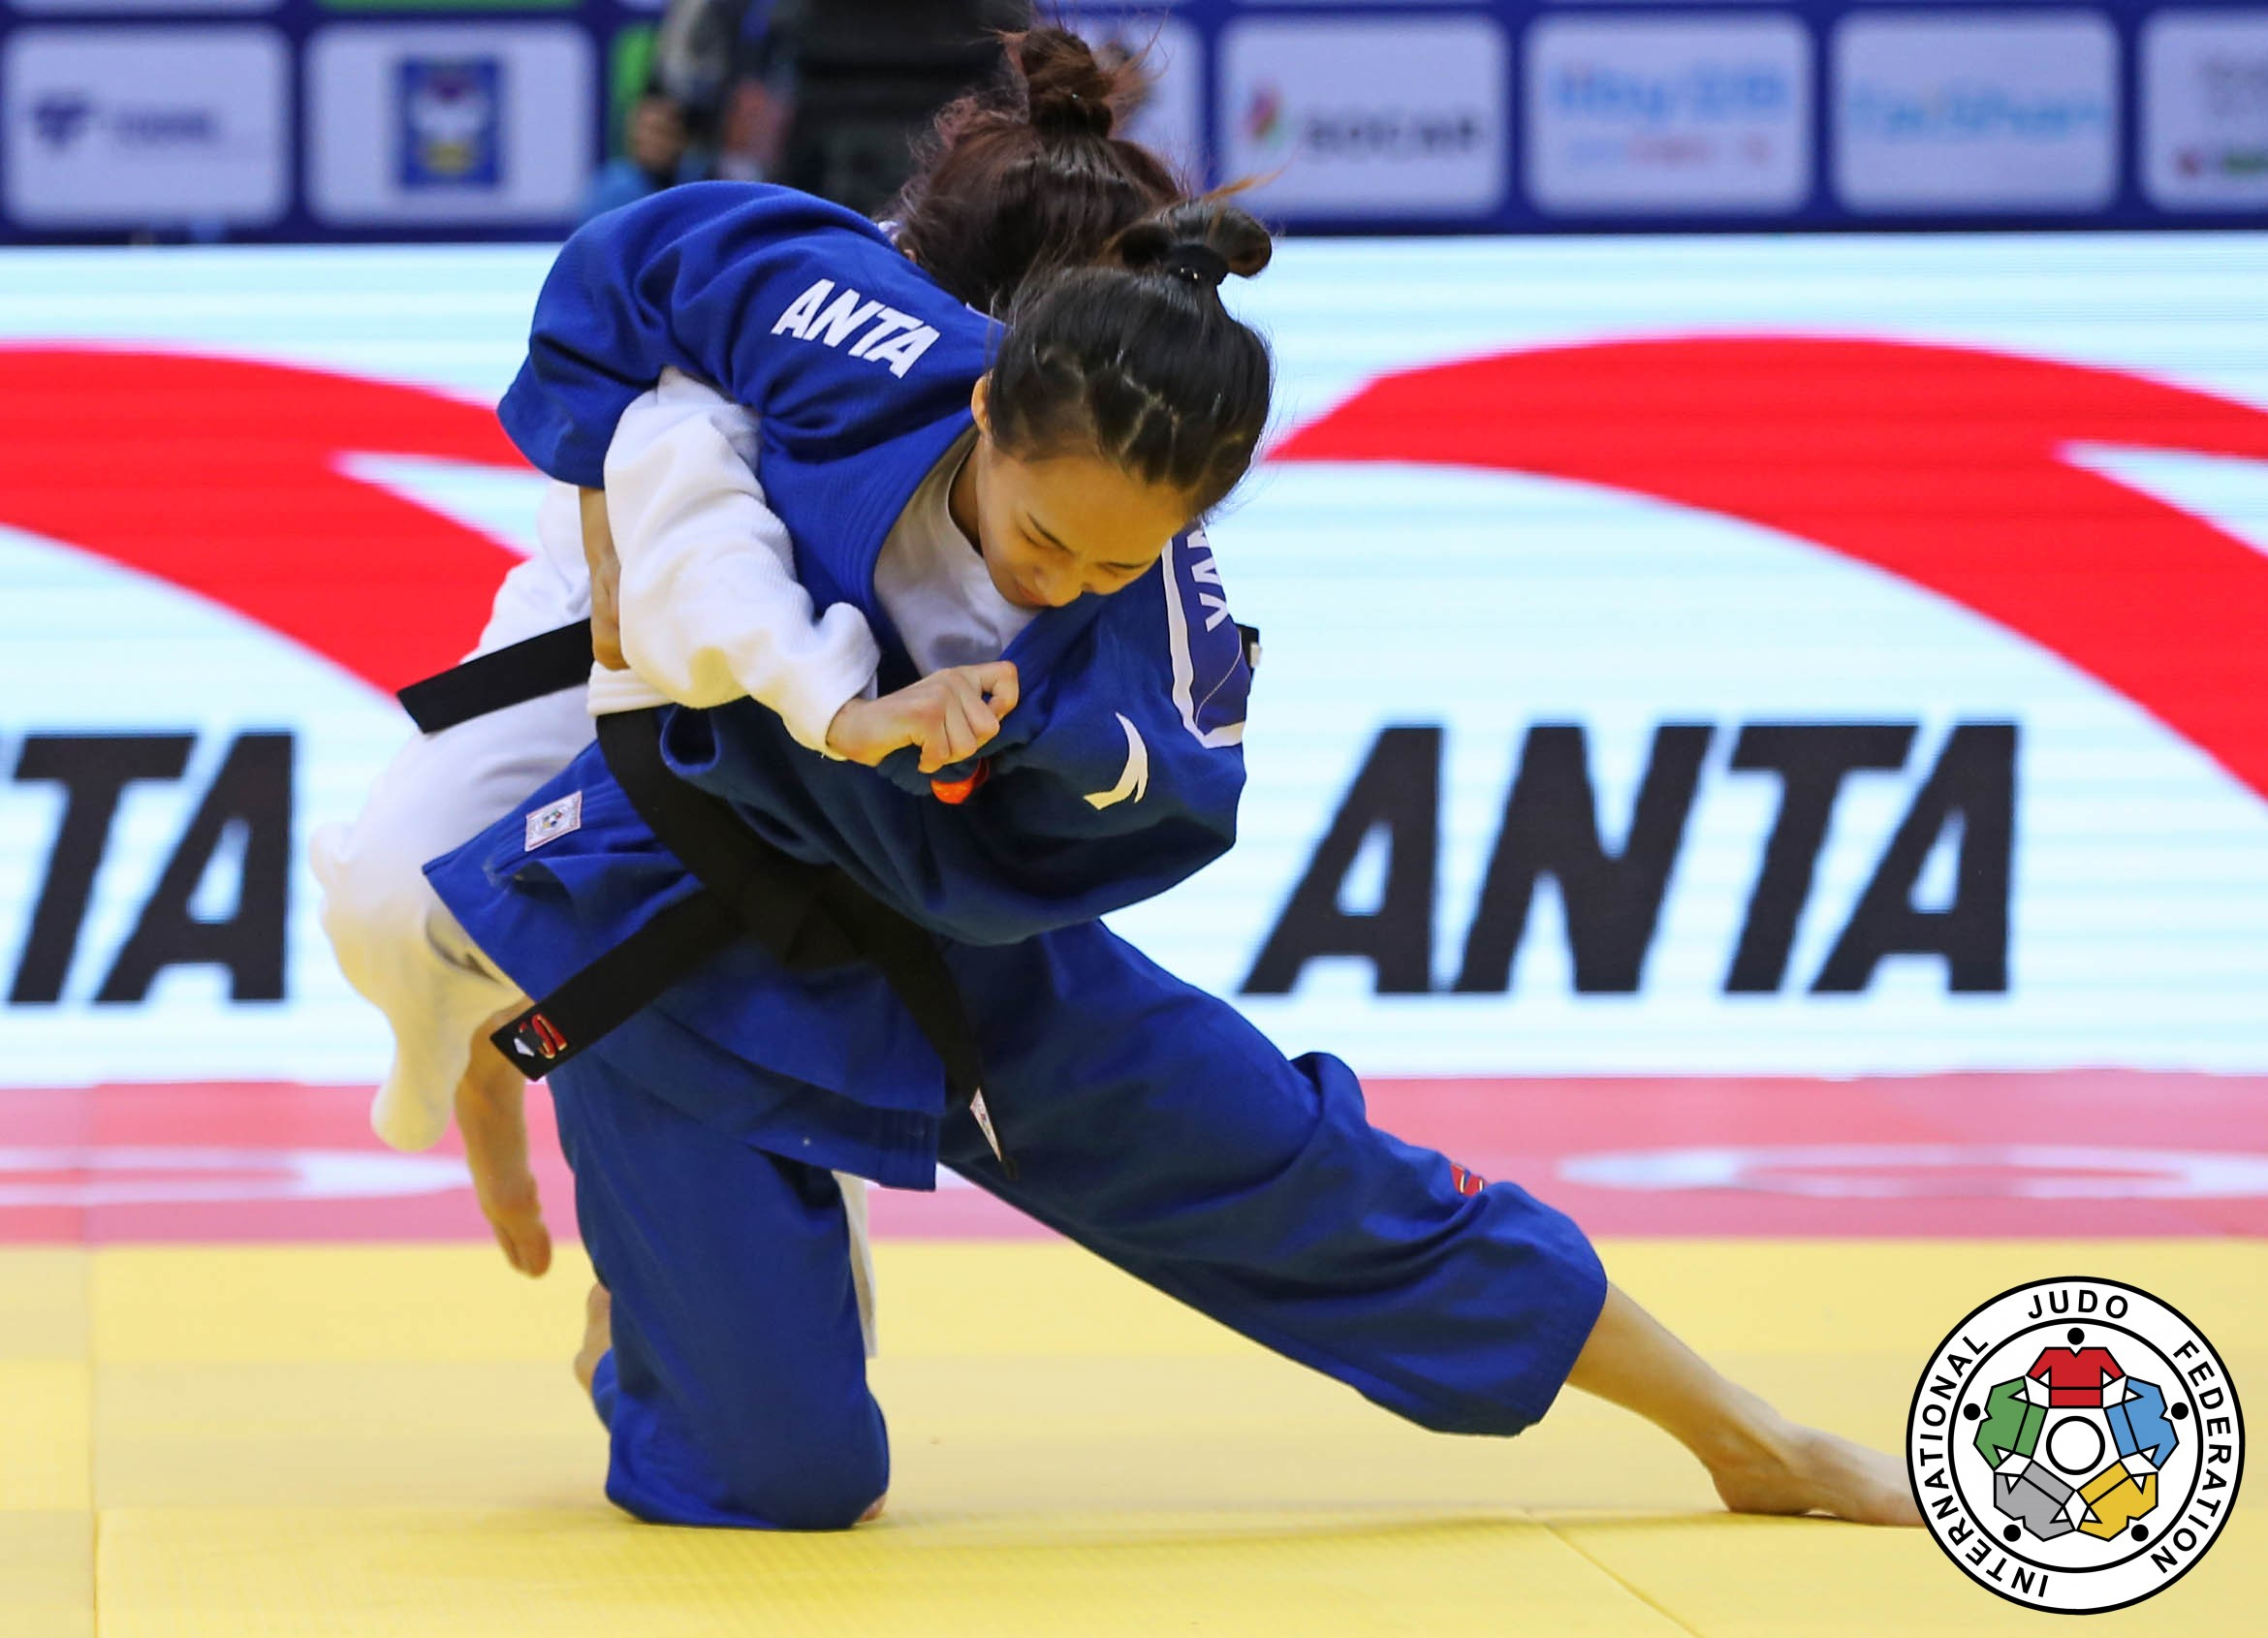 20161118_QingdaoGP_IJF_action_48 FINAL vs CHN LI